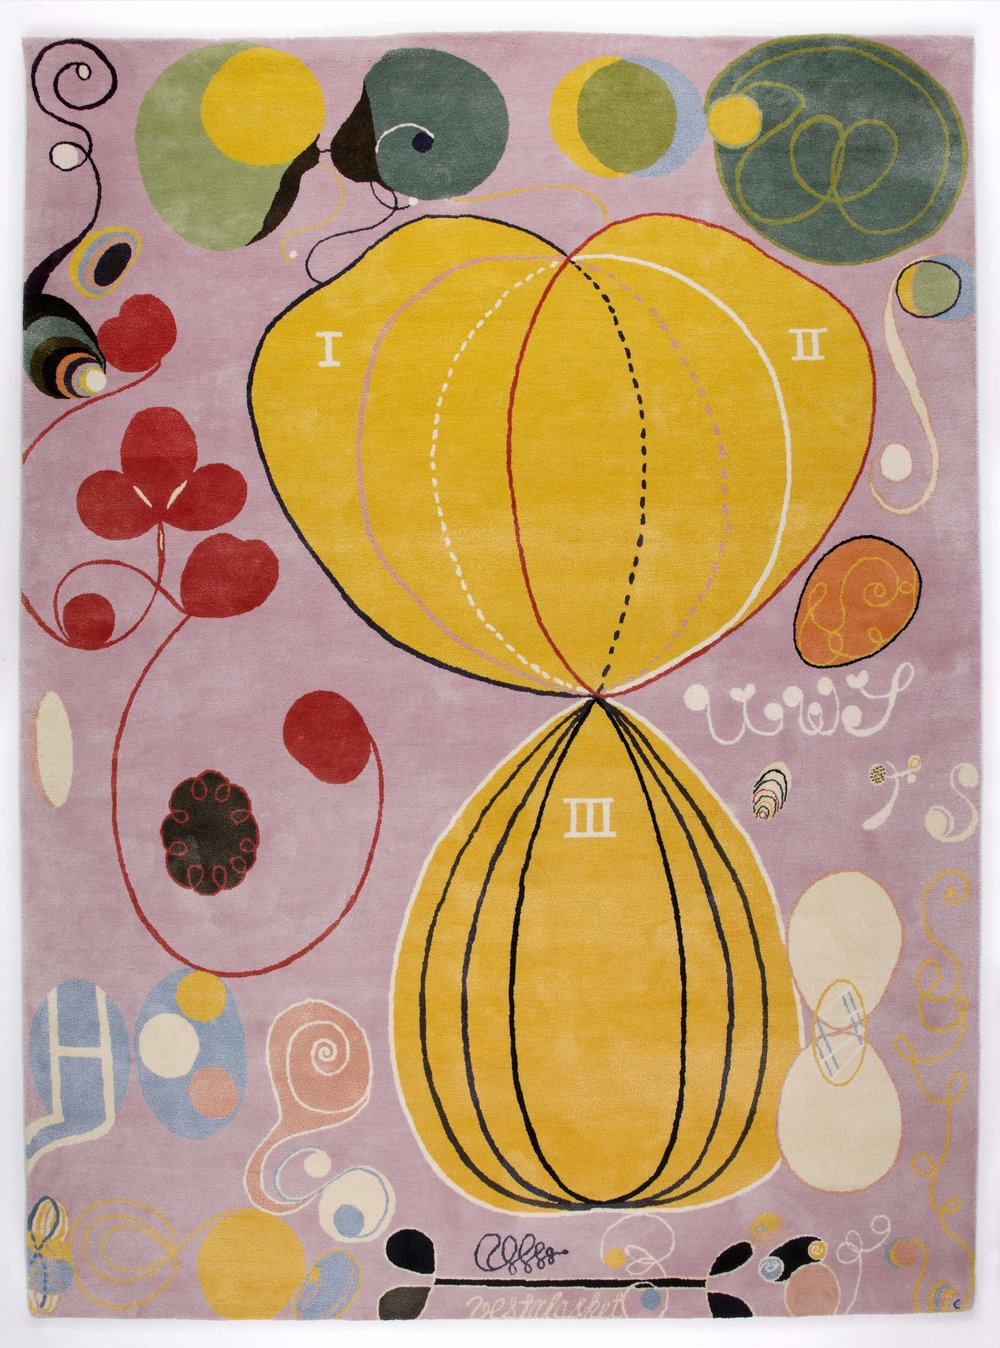 Hilma af Klint   Group IV, no 7. The Ten Largest, Adulthood  315 x 235 cm Edition 10 75% New Zealand wool, 25% silk Handknotted